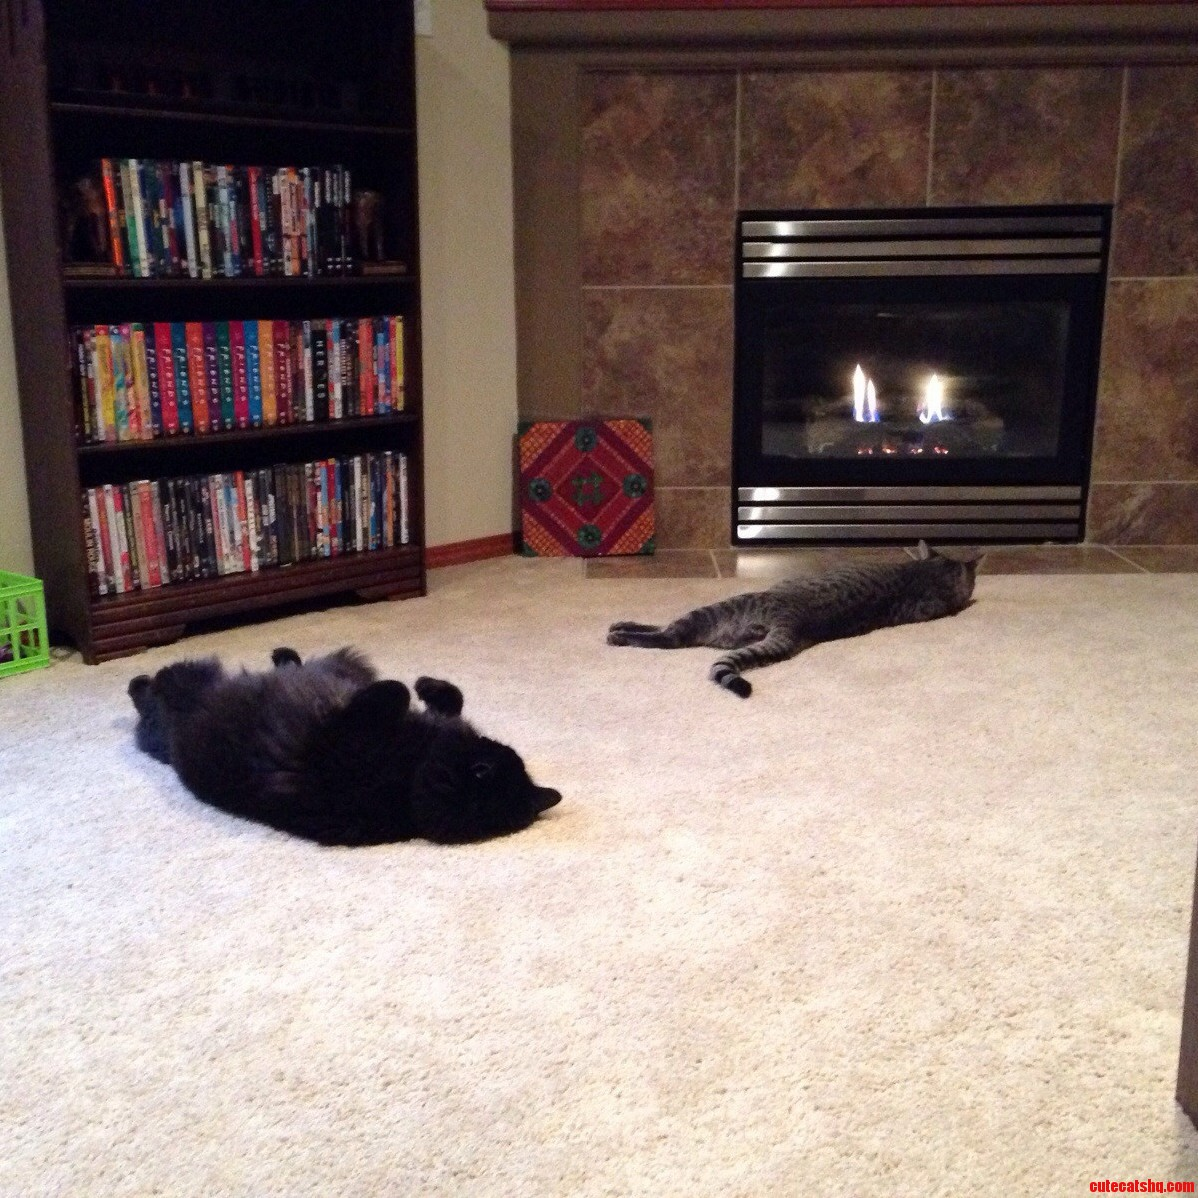 Recently Rearranged Our Living Room To Take Advantage Of The Fireplace. I Think Theyre Pretty Happy With The Change.